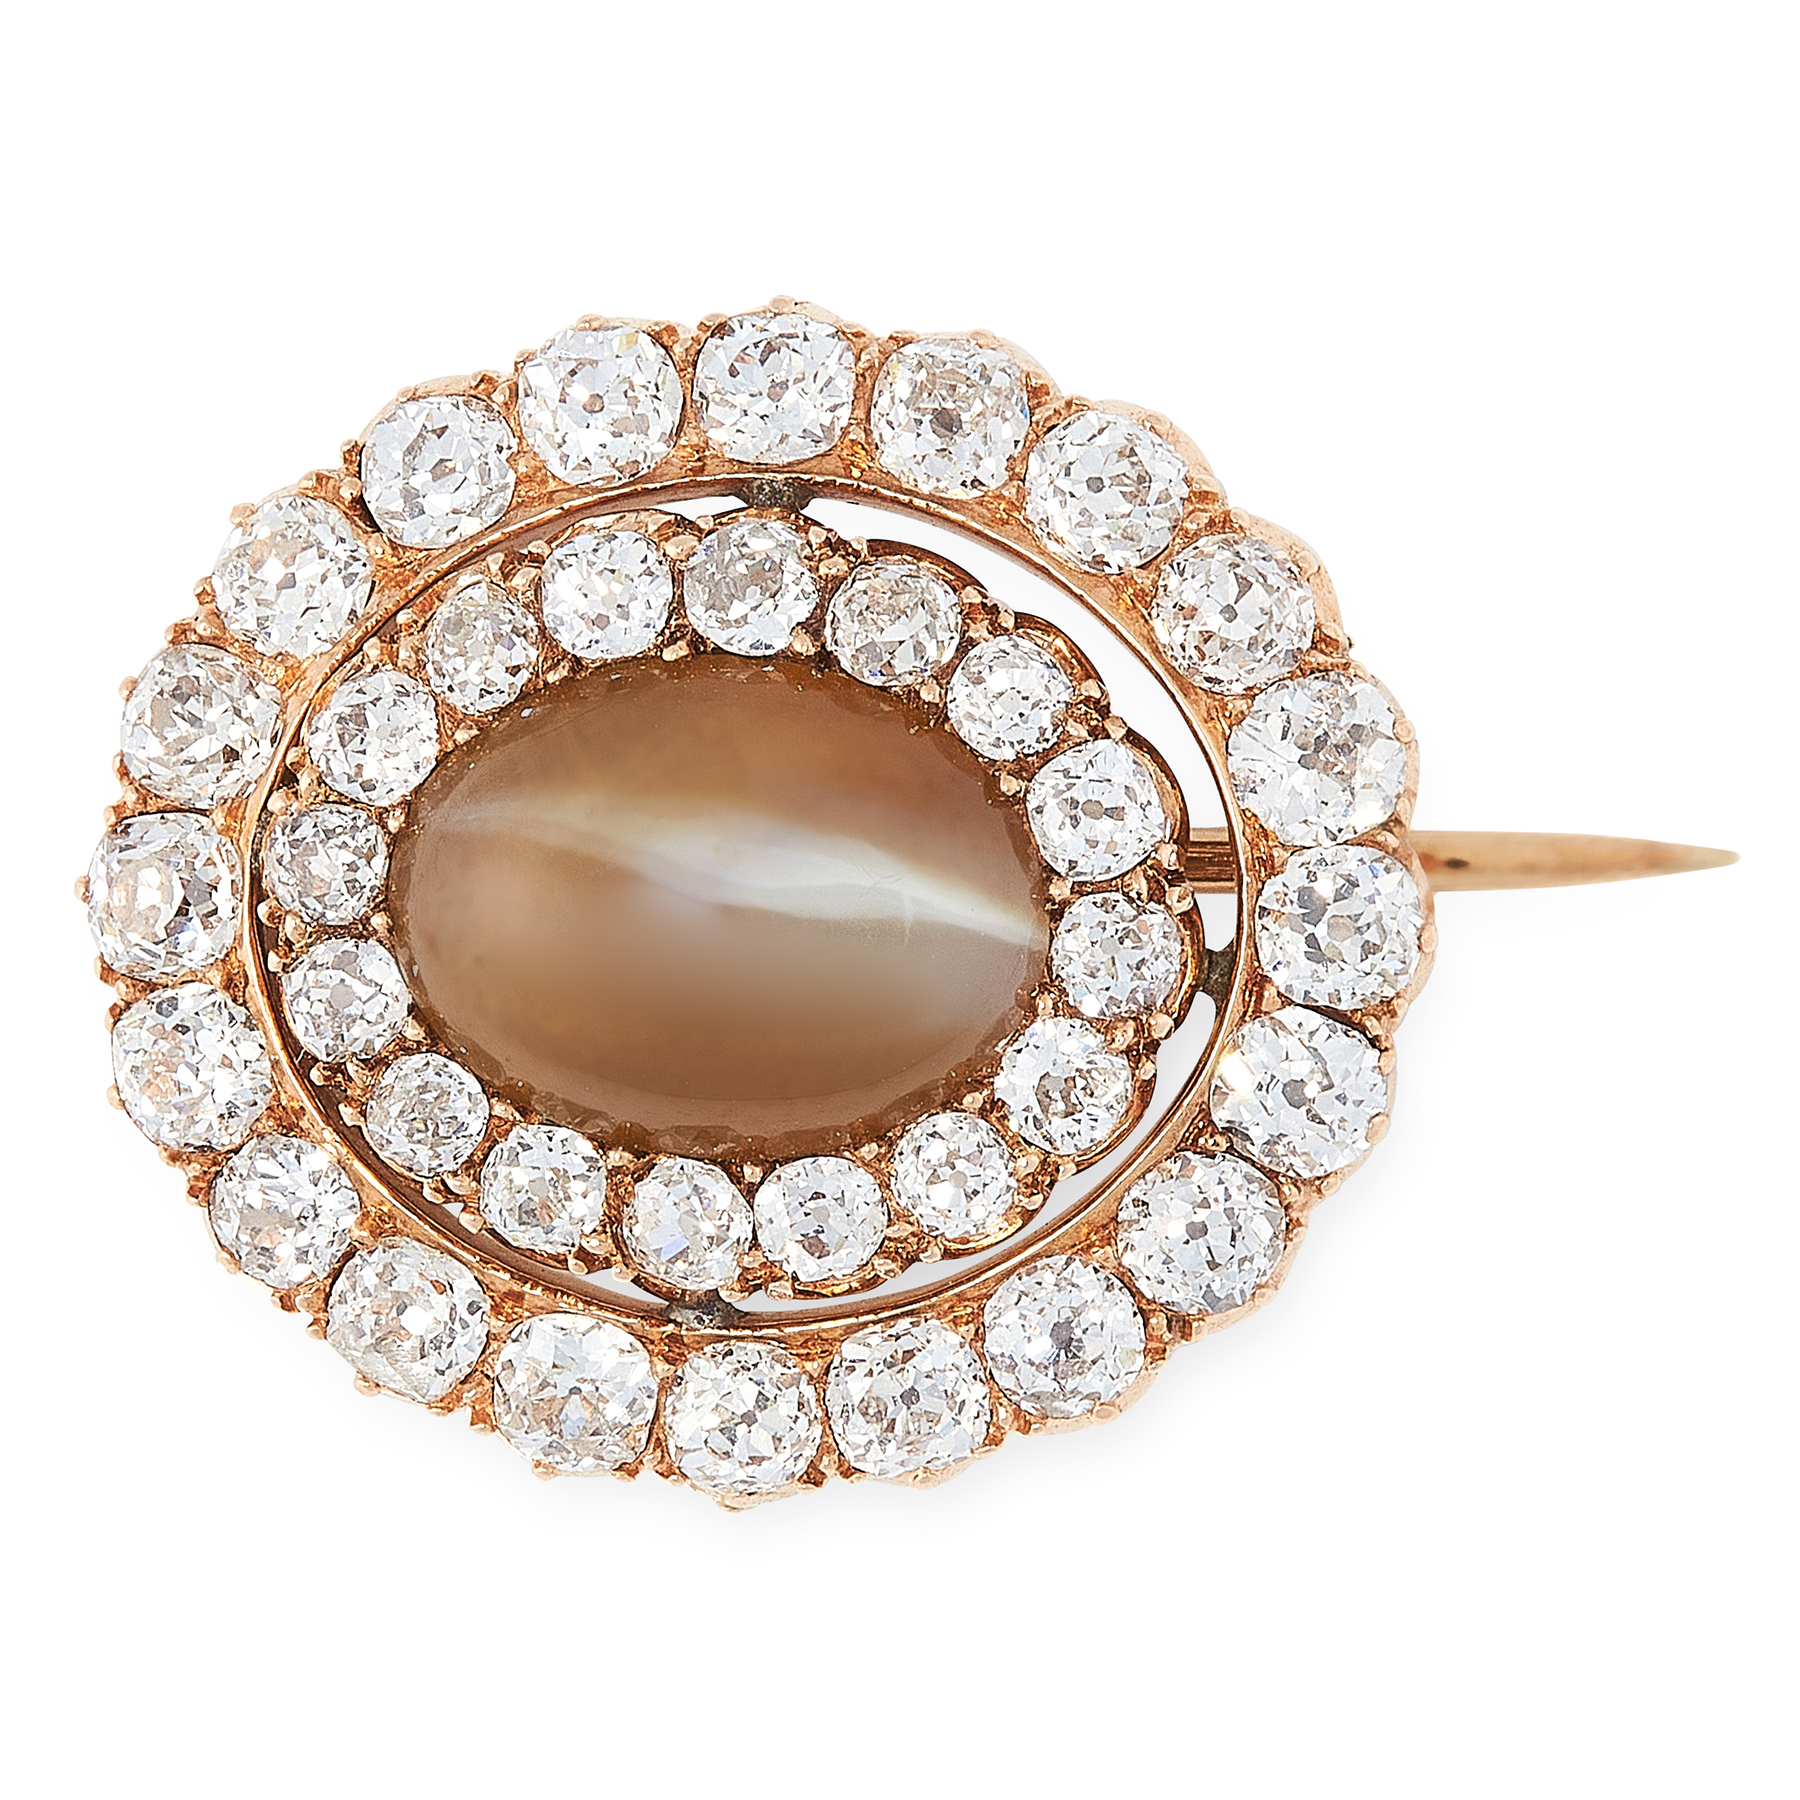 AN ANTIQUE CATS EYE CHRYSOBERYL AND DIAMOND BROOCH in high carat yellow gold, set with an oval